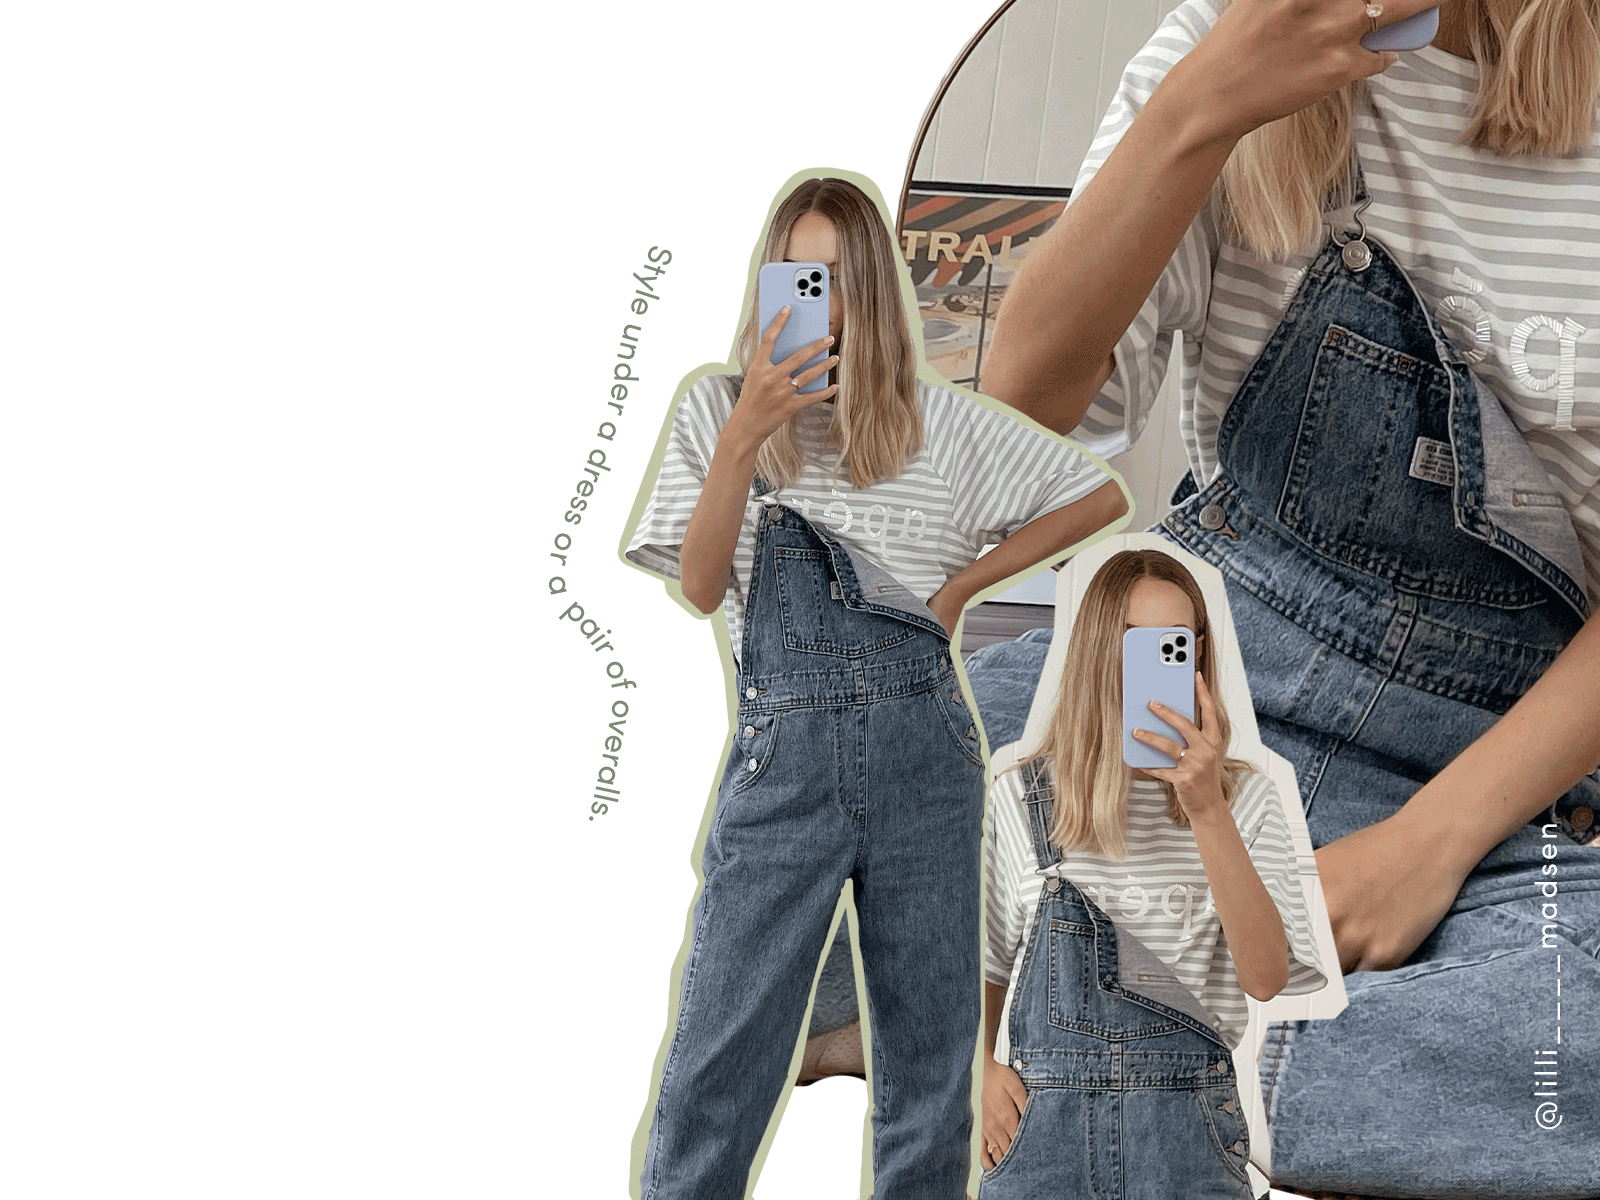 Layer overalls over the top